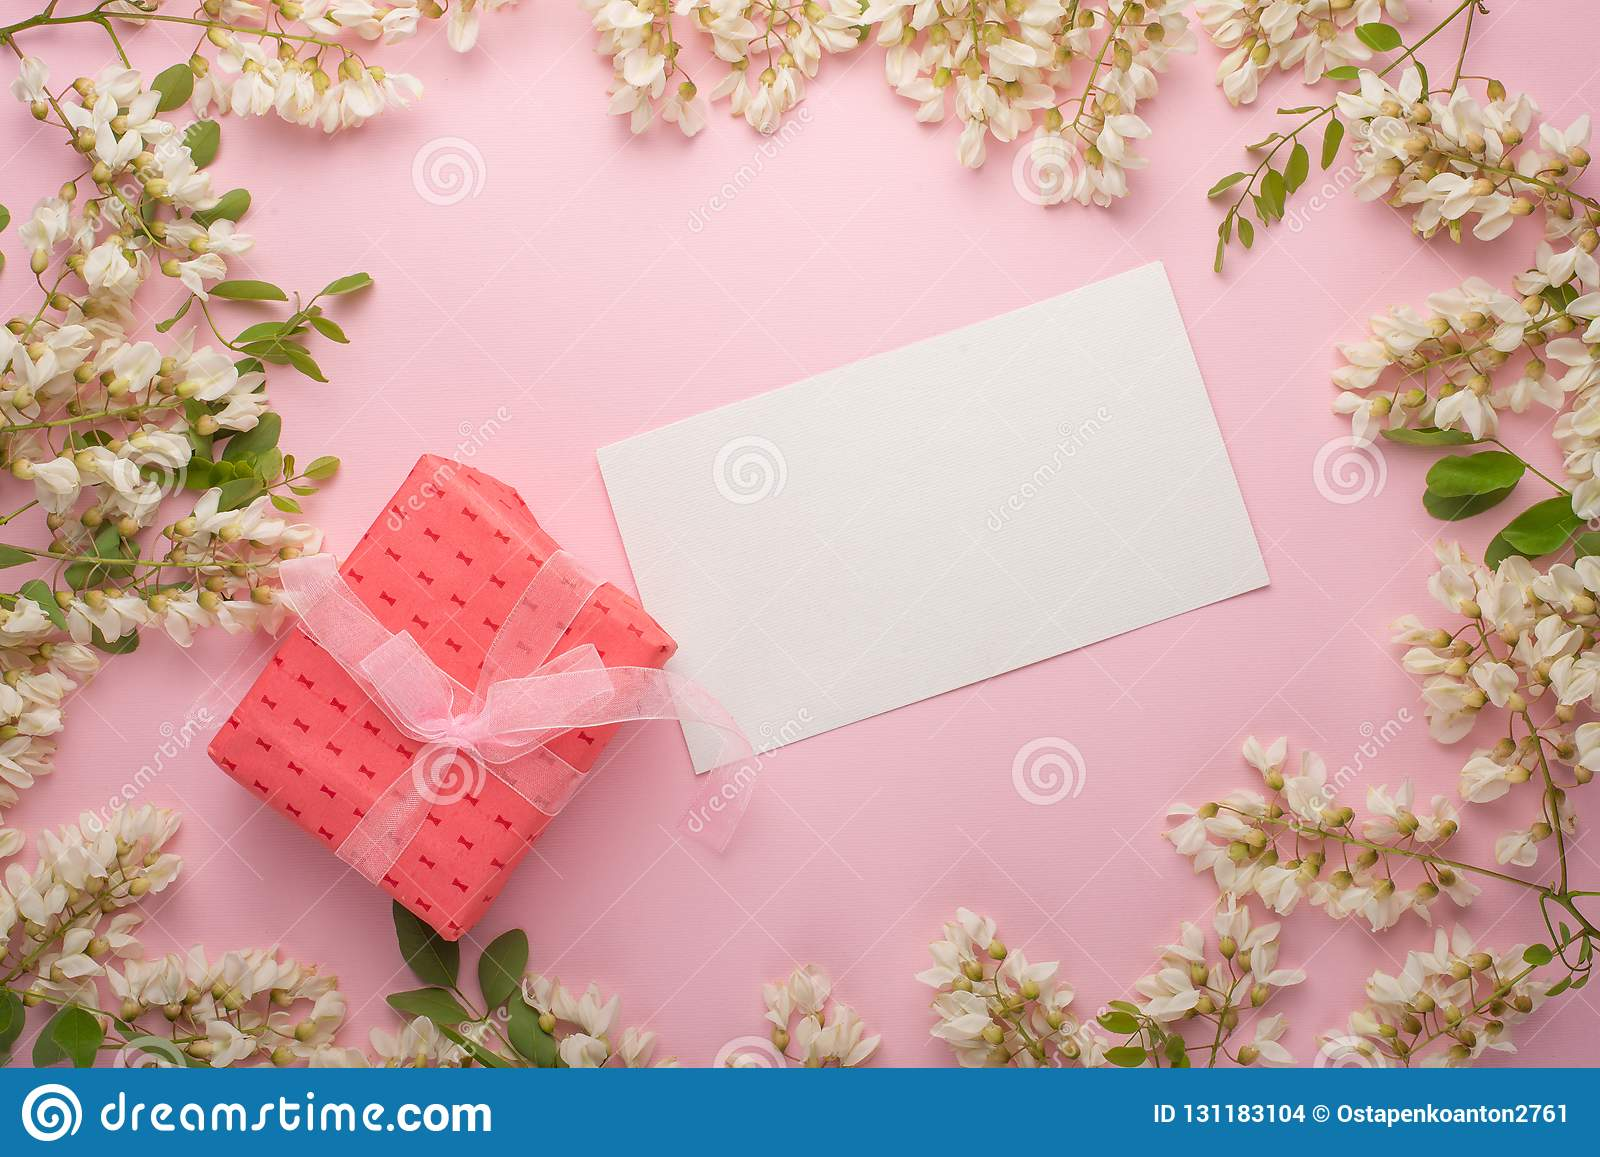 Spring Floral Background With Gift Texture And Wallpaper Flat